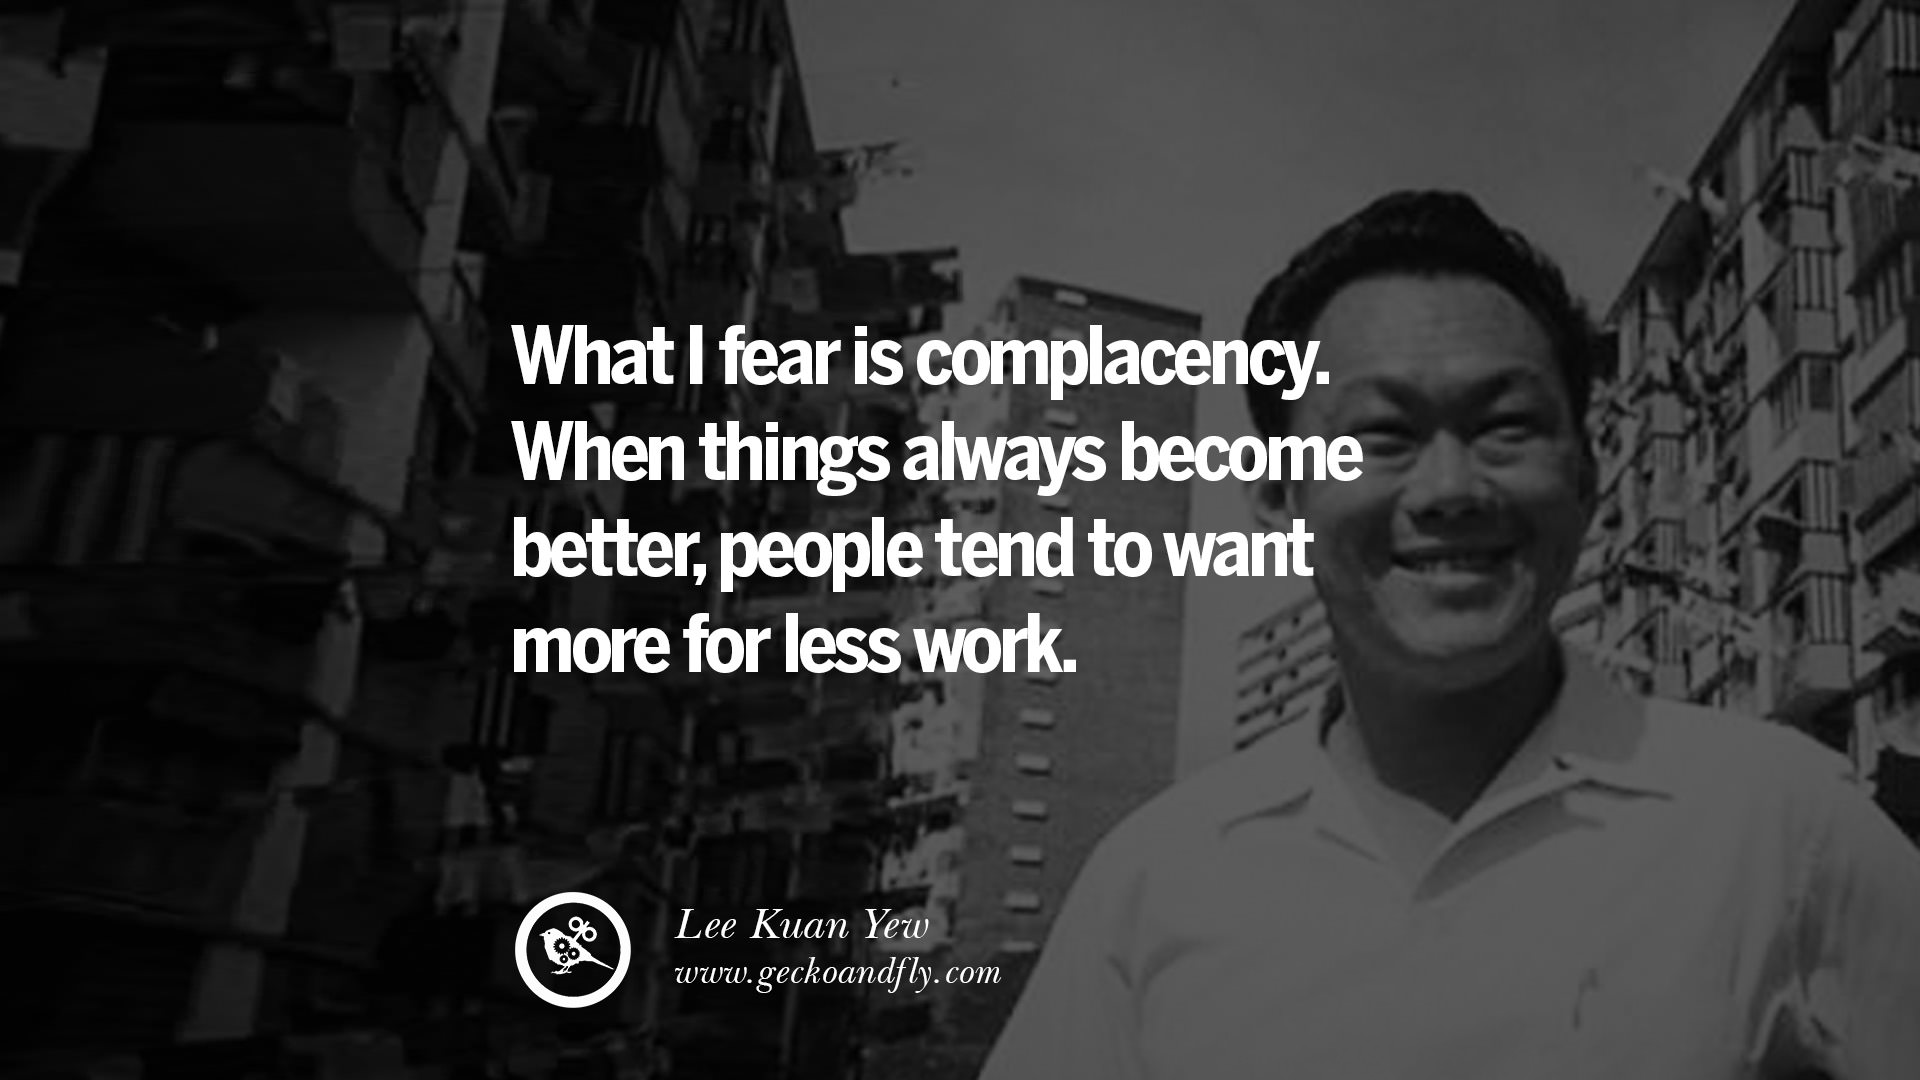 Complacency Quotes 25 Inspiring Lee Kuan Yew Quotes On From Third World To First